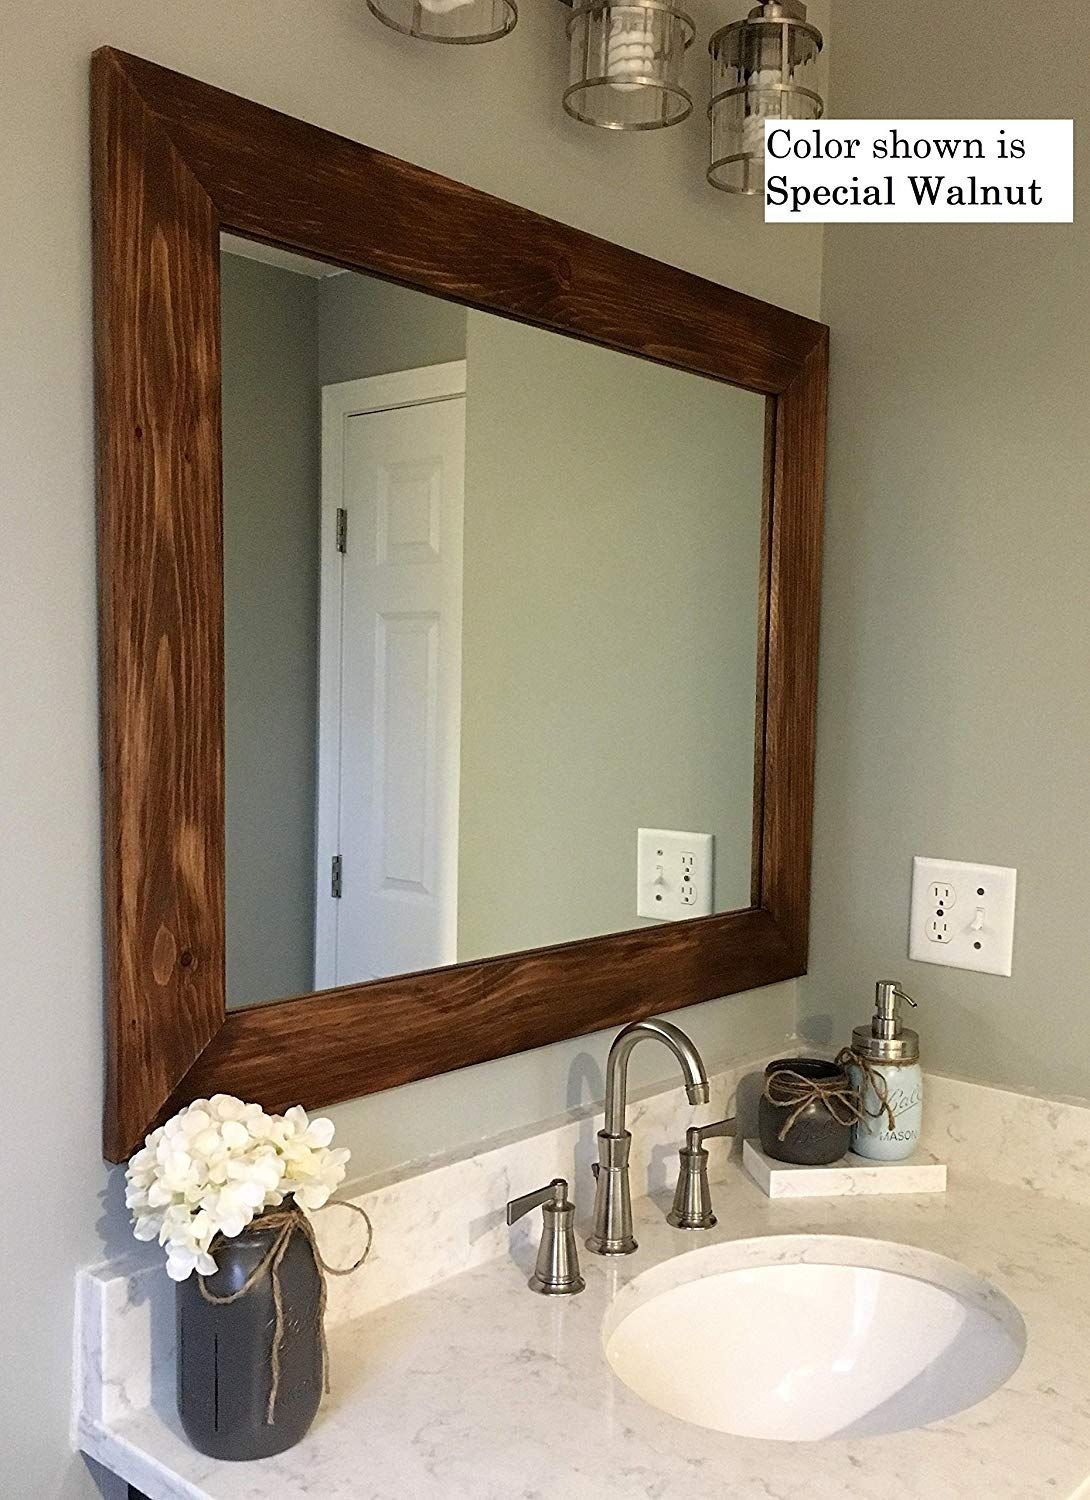 Renewed Decor Shiplap Reclaimed Wood Mirror In 20 Stain Colors Large Wall Mirror Rustic Modern Reclaimed Wood Mirror Bathroom Mirror Large Bathroom Mirrors